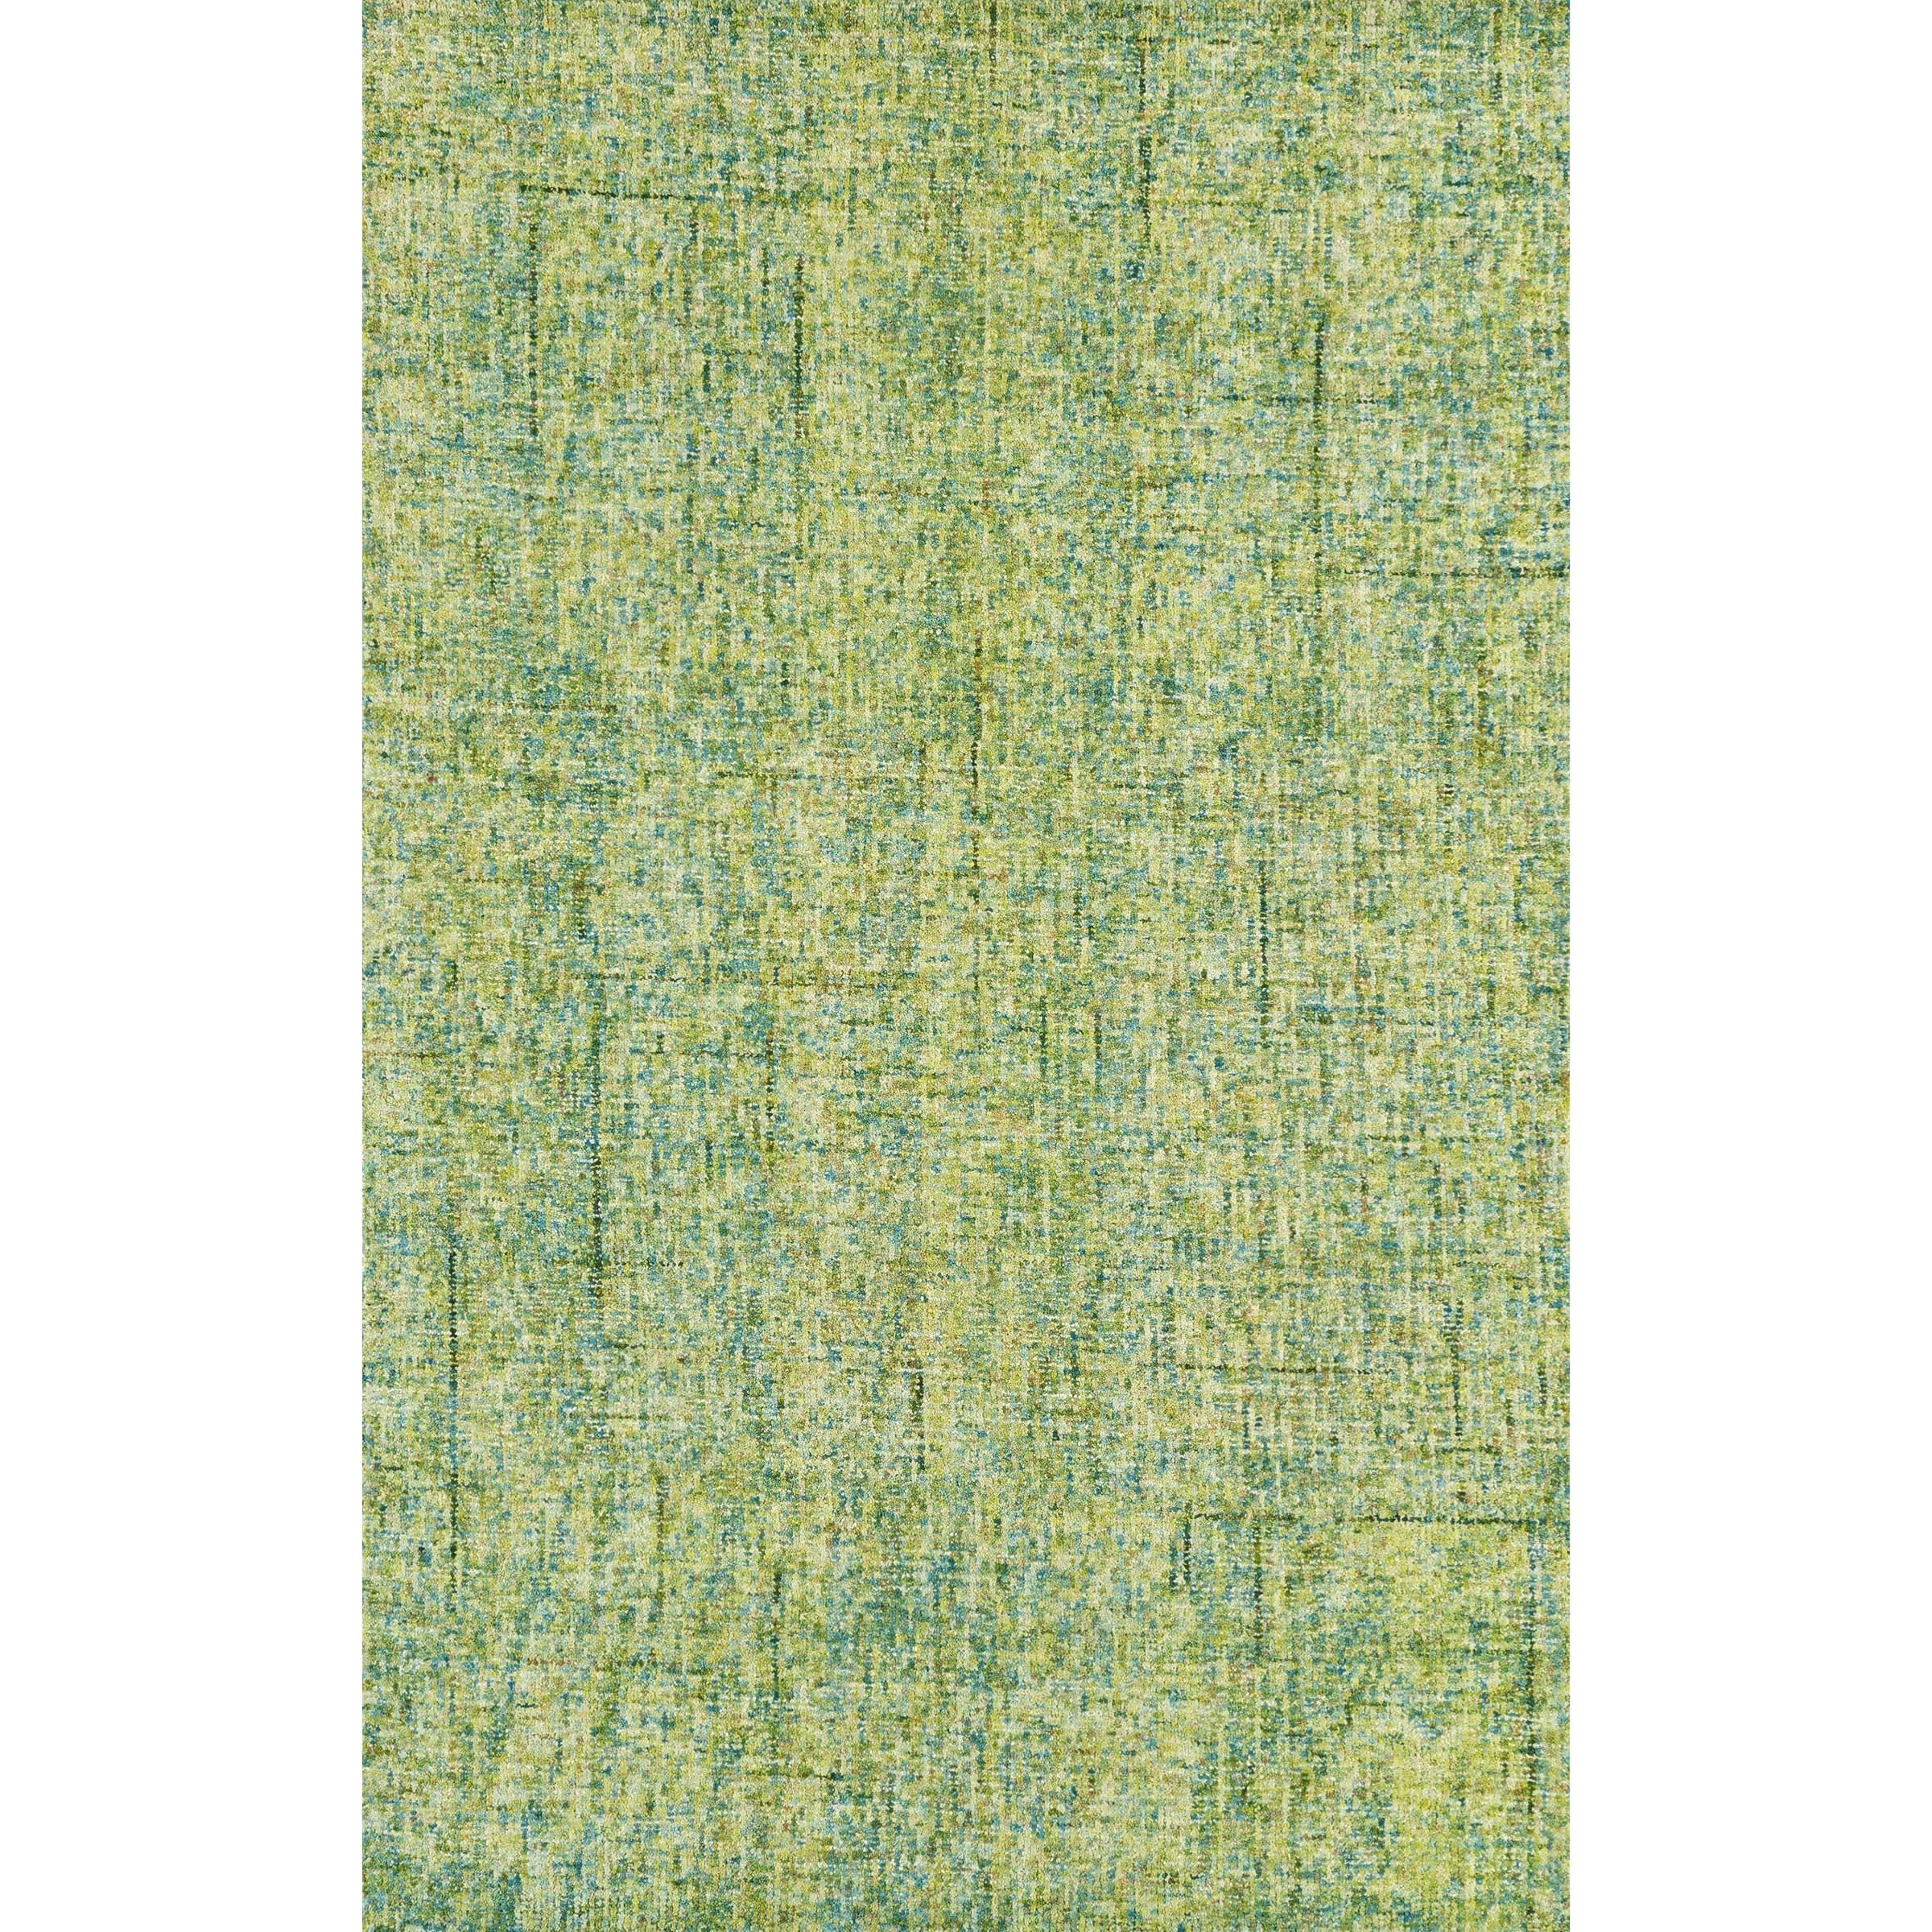 "Calisa Kiwi 5'X7'6"" Rug by Dalyn at Sadler's Home Furnishings"